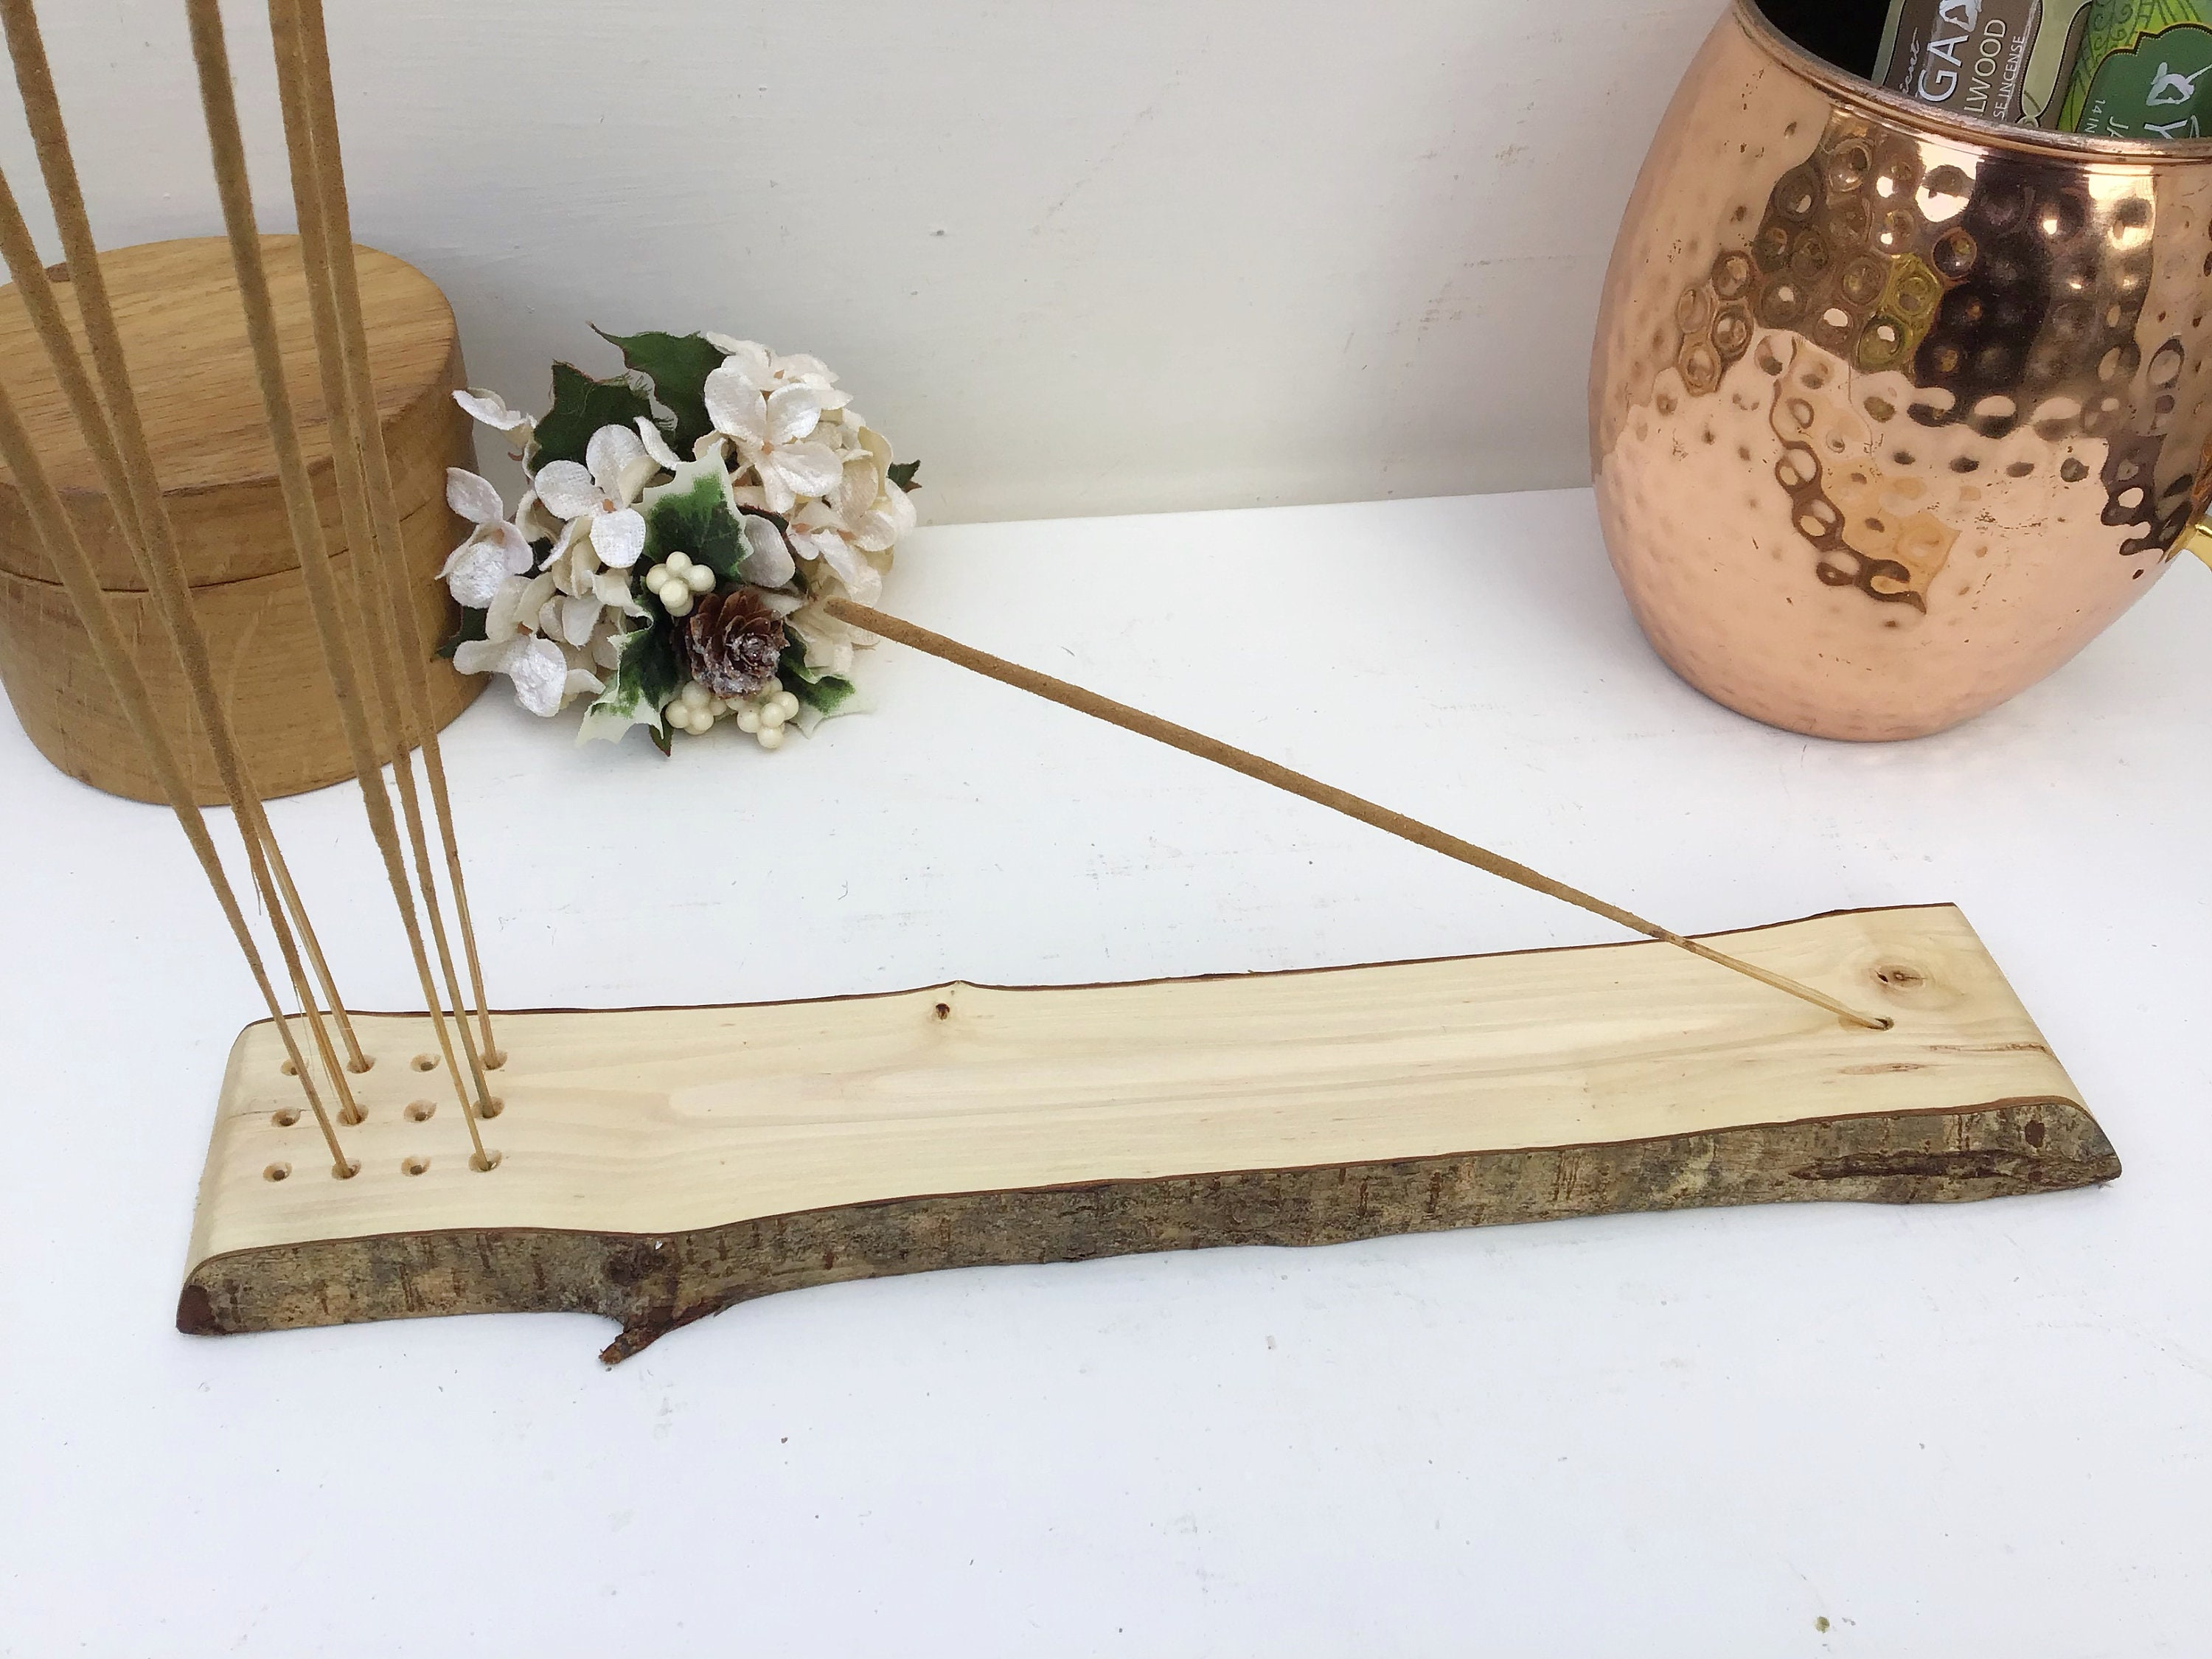 Wooden Incense Joss Stick Cone Holder Carved Wood Home Health Accessories 8C